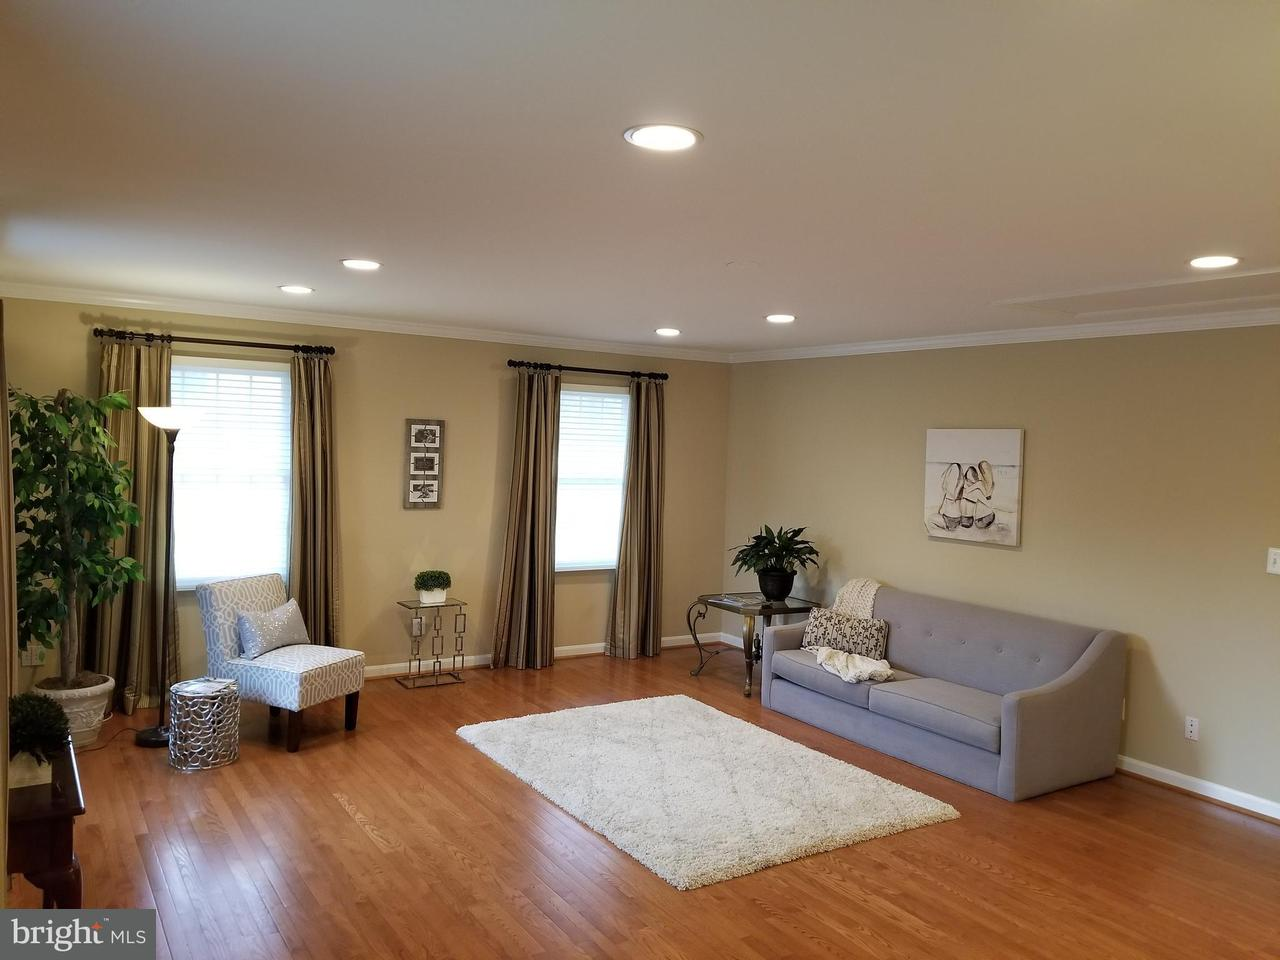 Additional photo for property listing at 10917 Woodhaven Drive 10917 Woodhaven Drive Fairfax, Virginia 22030 Stati Uniti